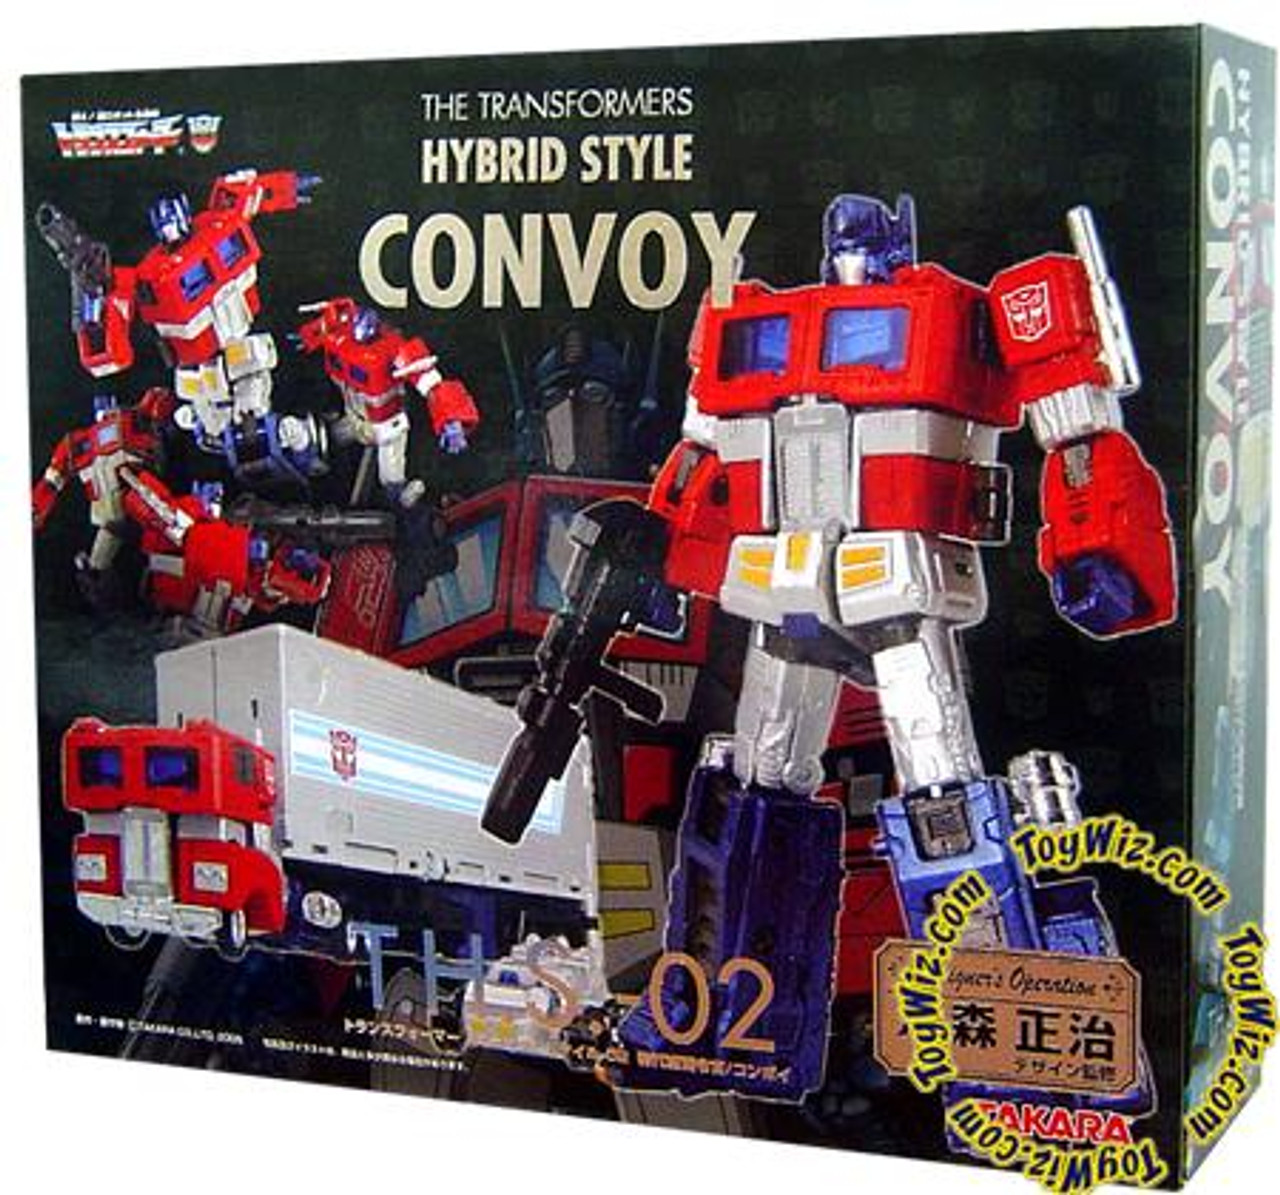 Transformers Japanese Masterpiece Hybrid Style Convoy Optimus Prime Action Figure THS-02